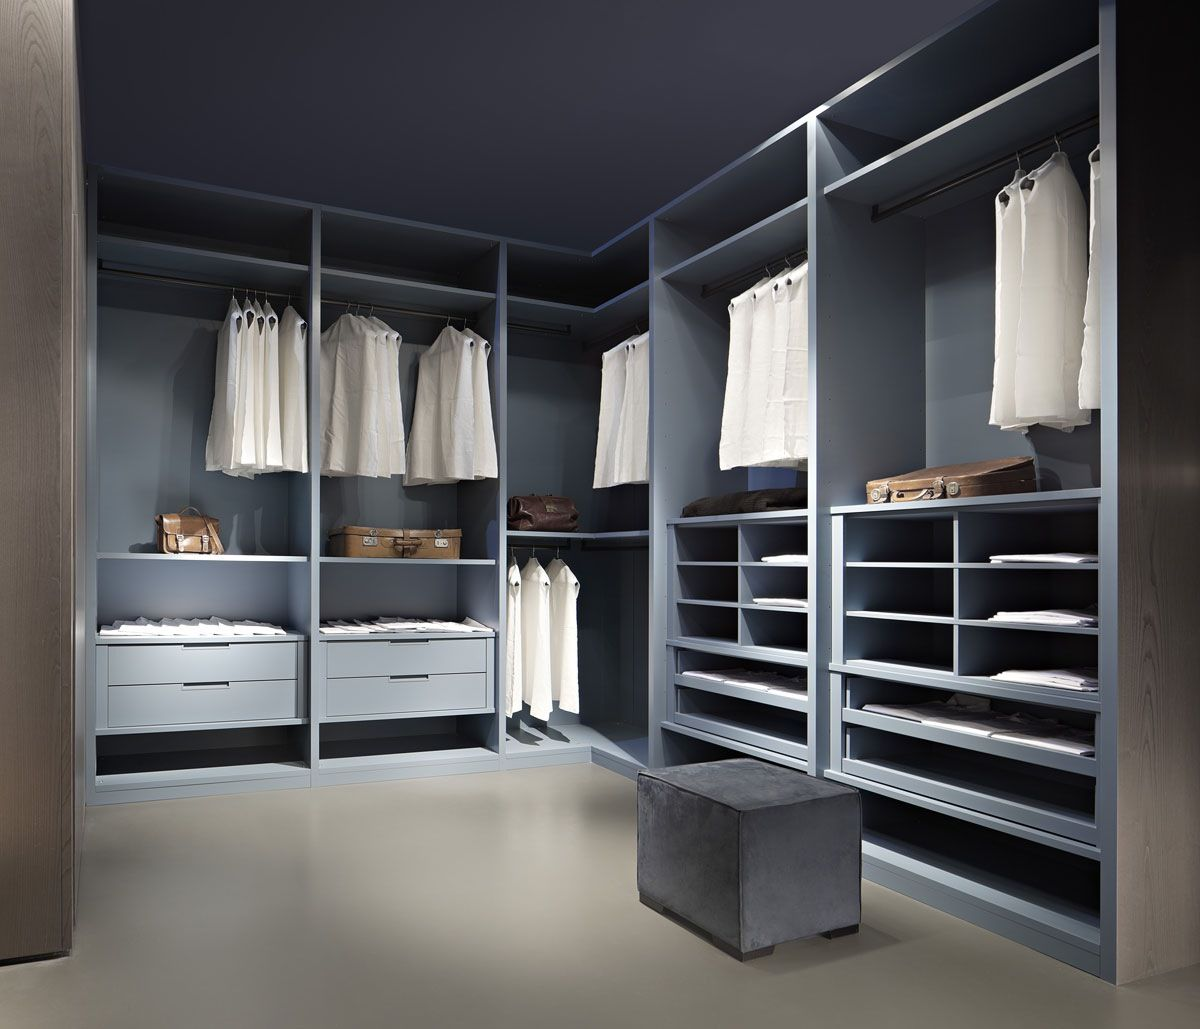 Modern And Fancy Bedroom Wardrobes And Closets   Admirable Grey Modern  WalkIn Bedroom Closet Design Inspiration. Modern And Fancy Bedroom Wardrobes And Closets   Admirable Grey